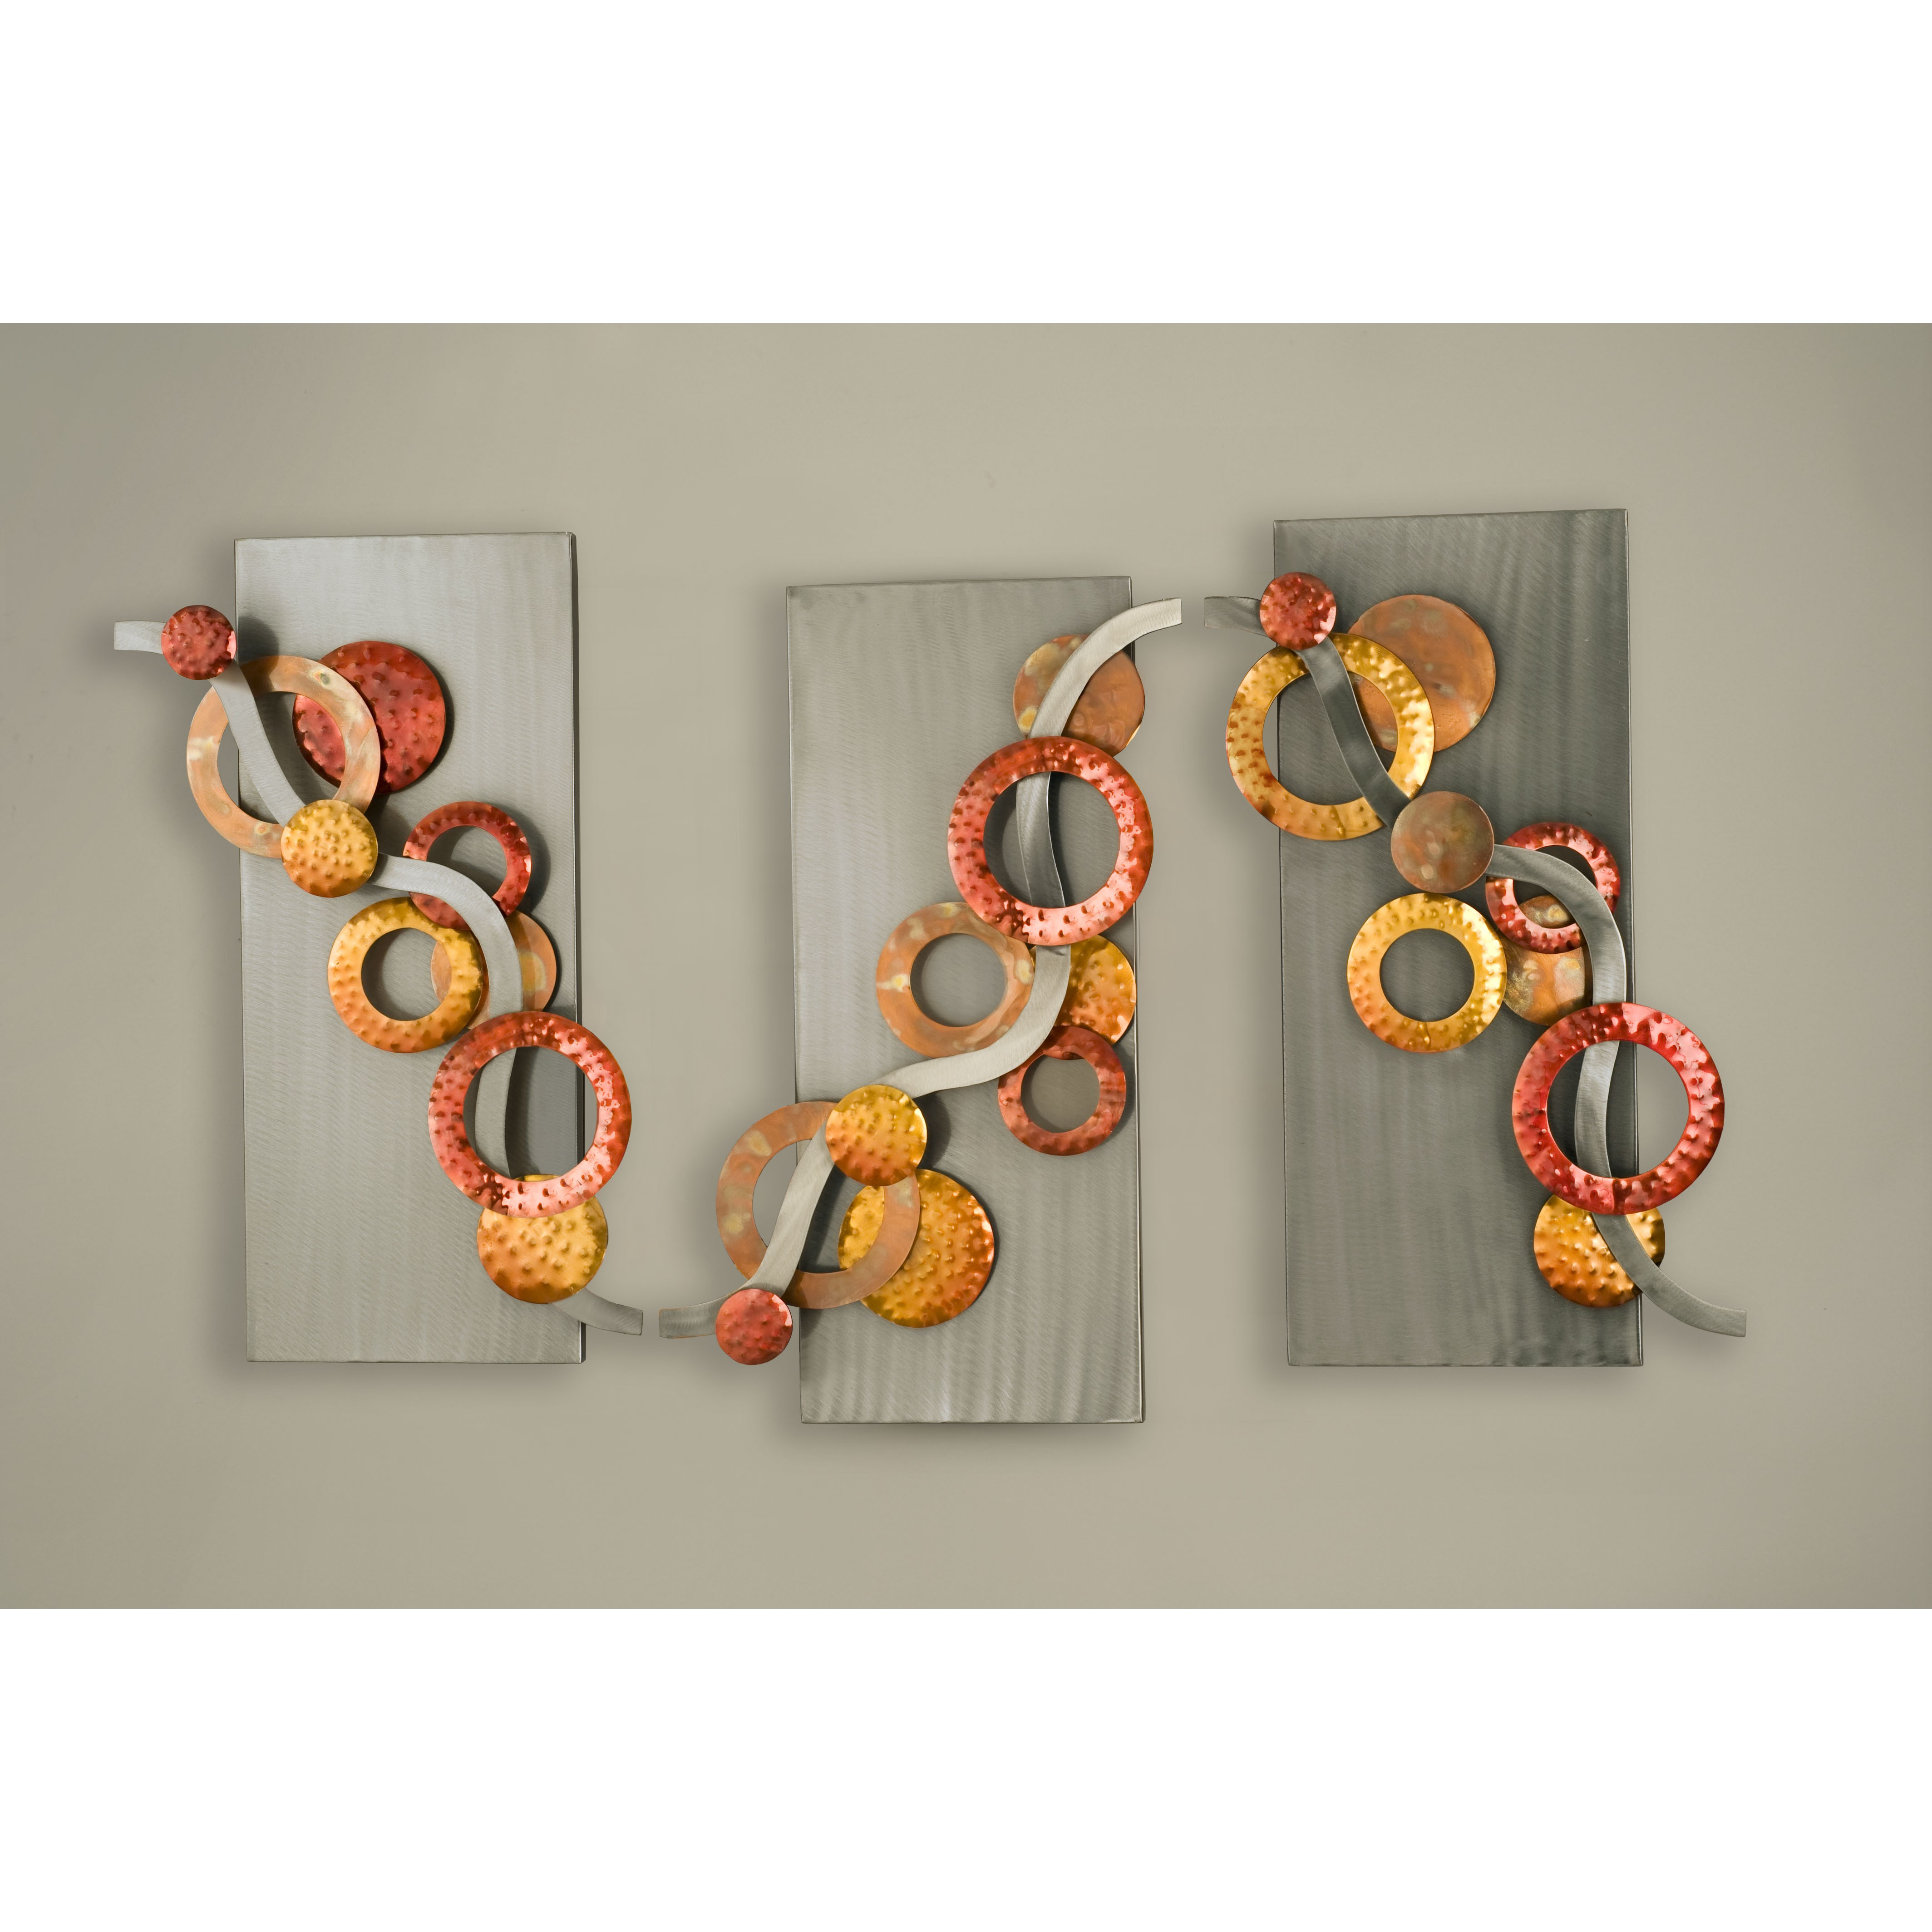 Wall Decor Set Of 3 : Wall art sets studiolx spumante set of by